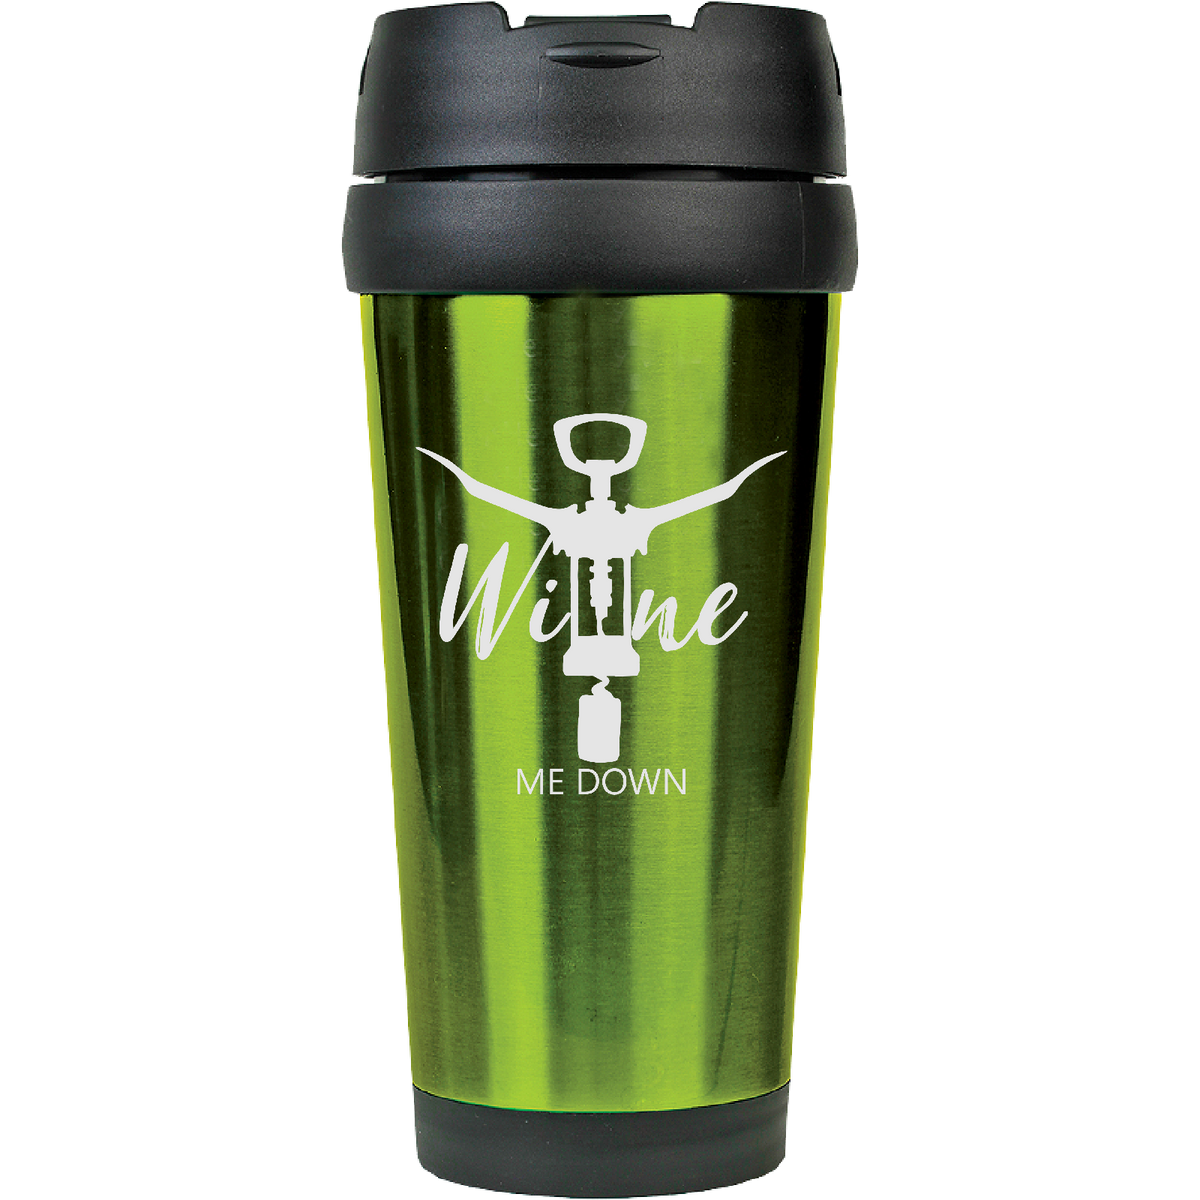 Wine me down - 16oz. Engraved Travel Mug with Flip Lid